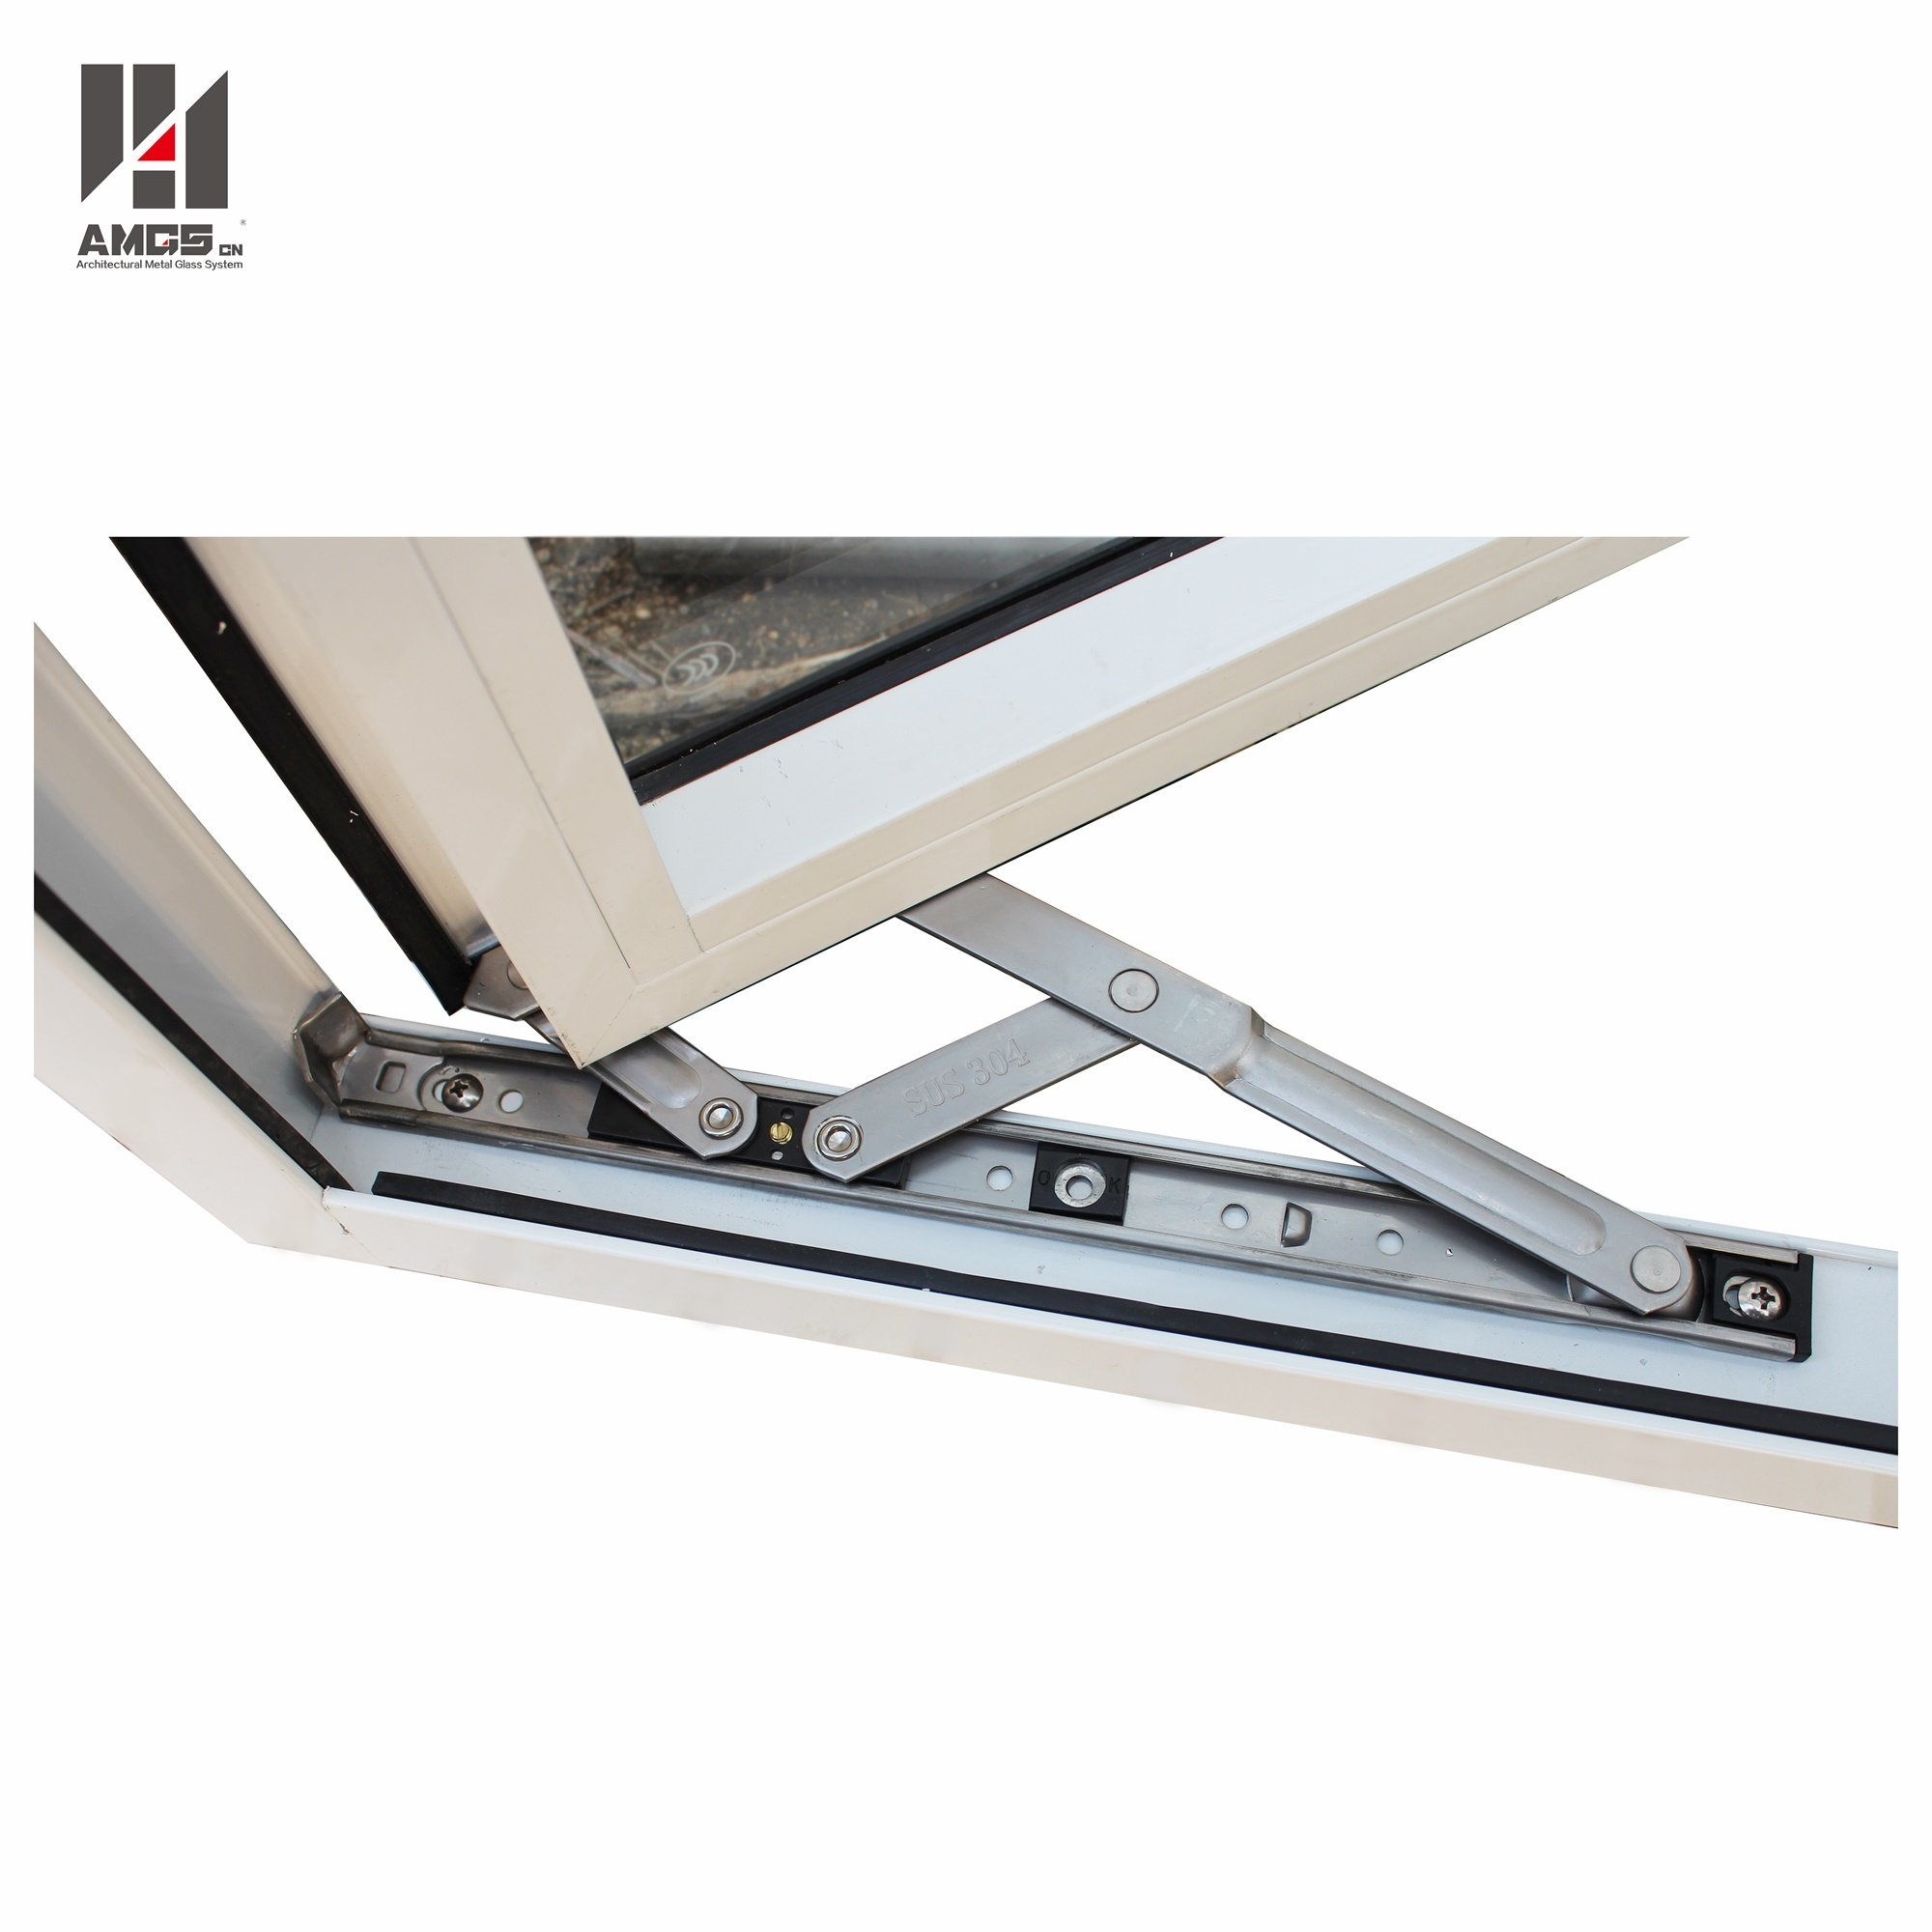 AMGS Outward-Opening Aluminium Profile Casement Windows For Residential Or Commercial Aluminum Casement Windows image14